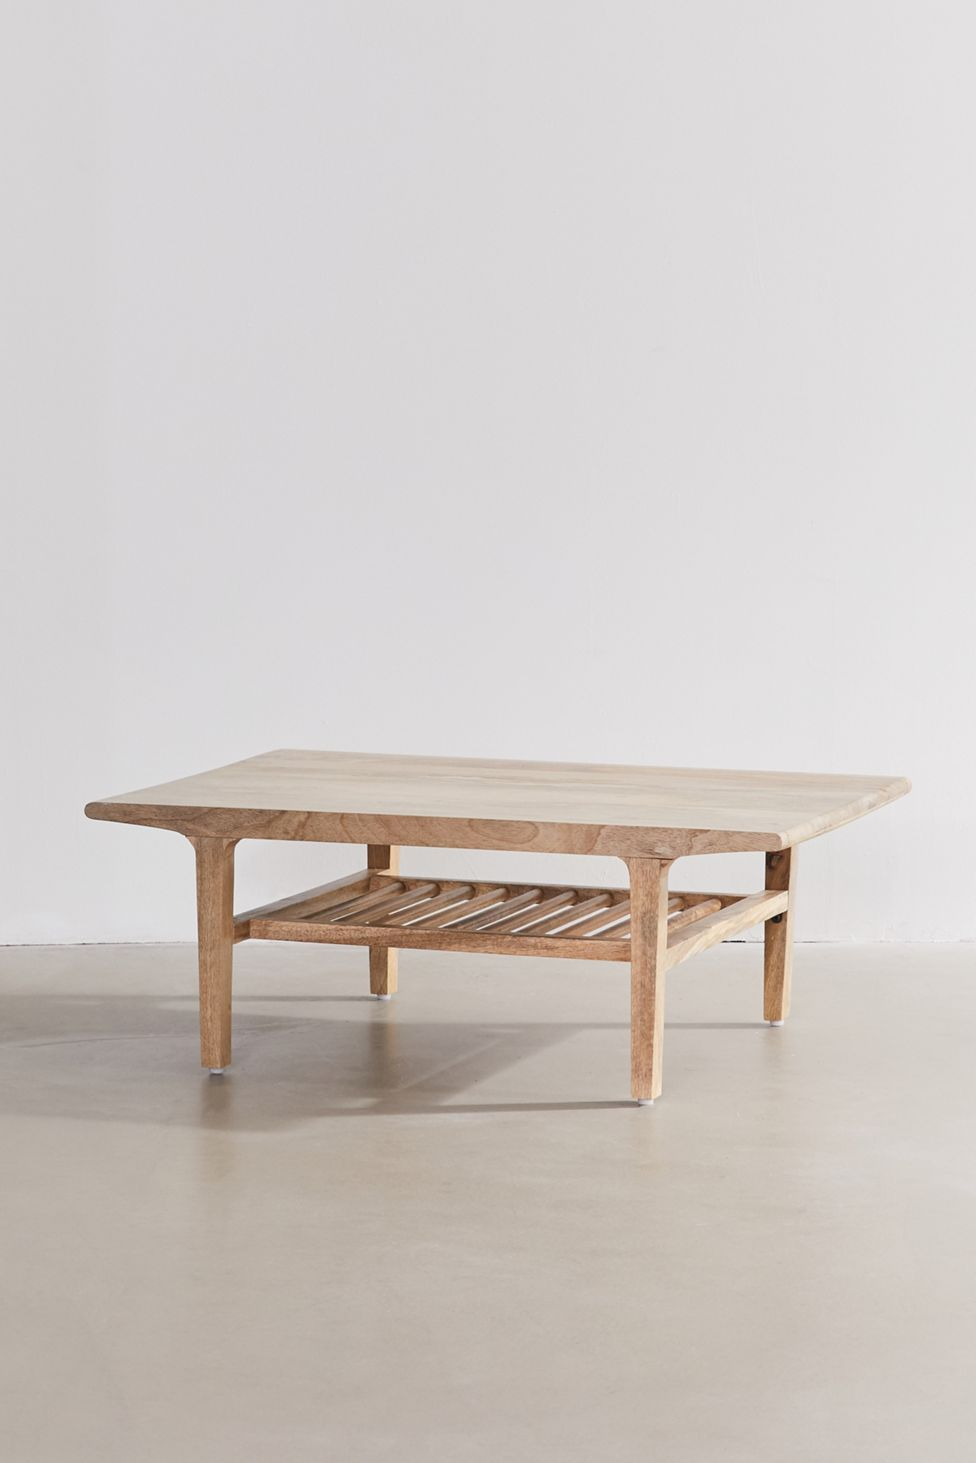 Hope Round Coffee Table Urban Outfitters Round Coffee Table Coffee Table White Round Coffee Table [ 1463 x 975 Pixel ]